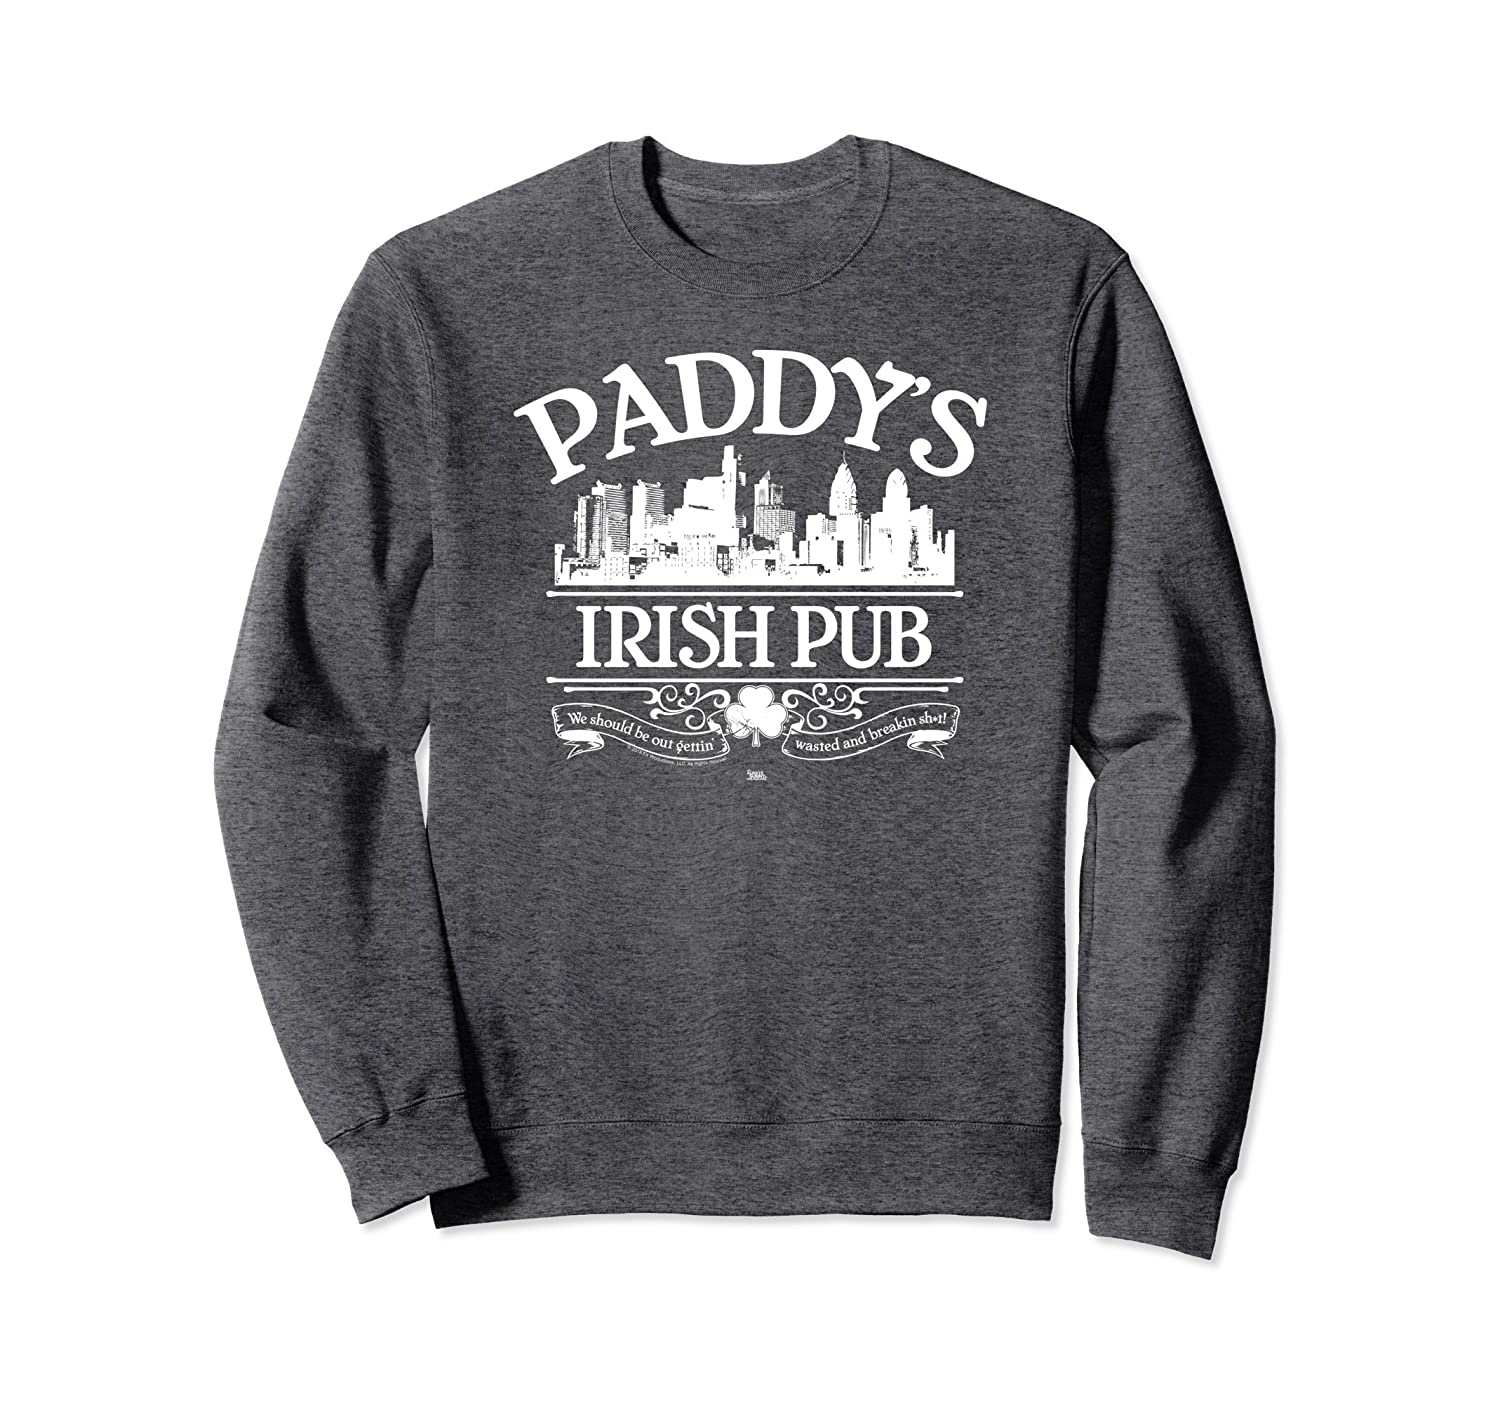 It's Always Sunny in Philadelphia Paddy's Wasted-mt